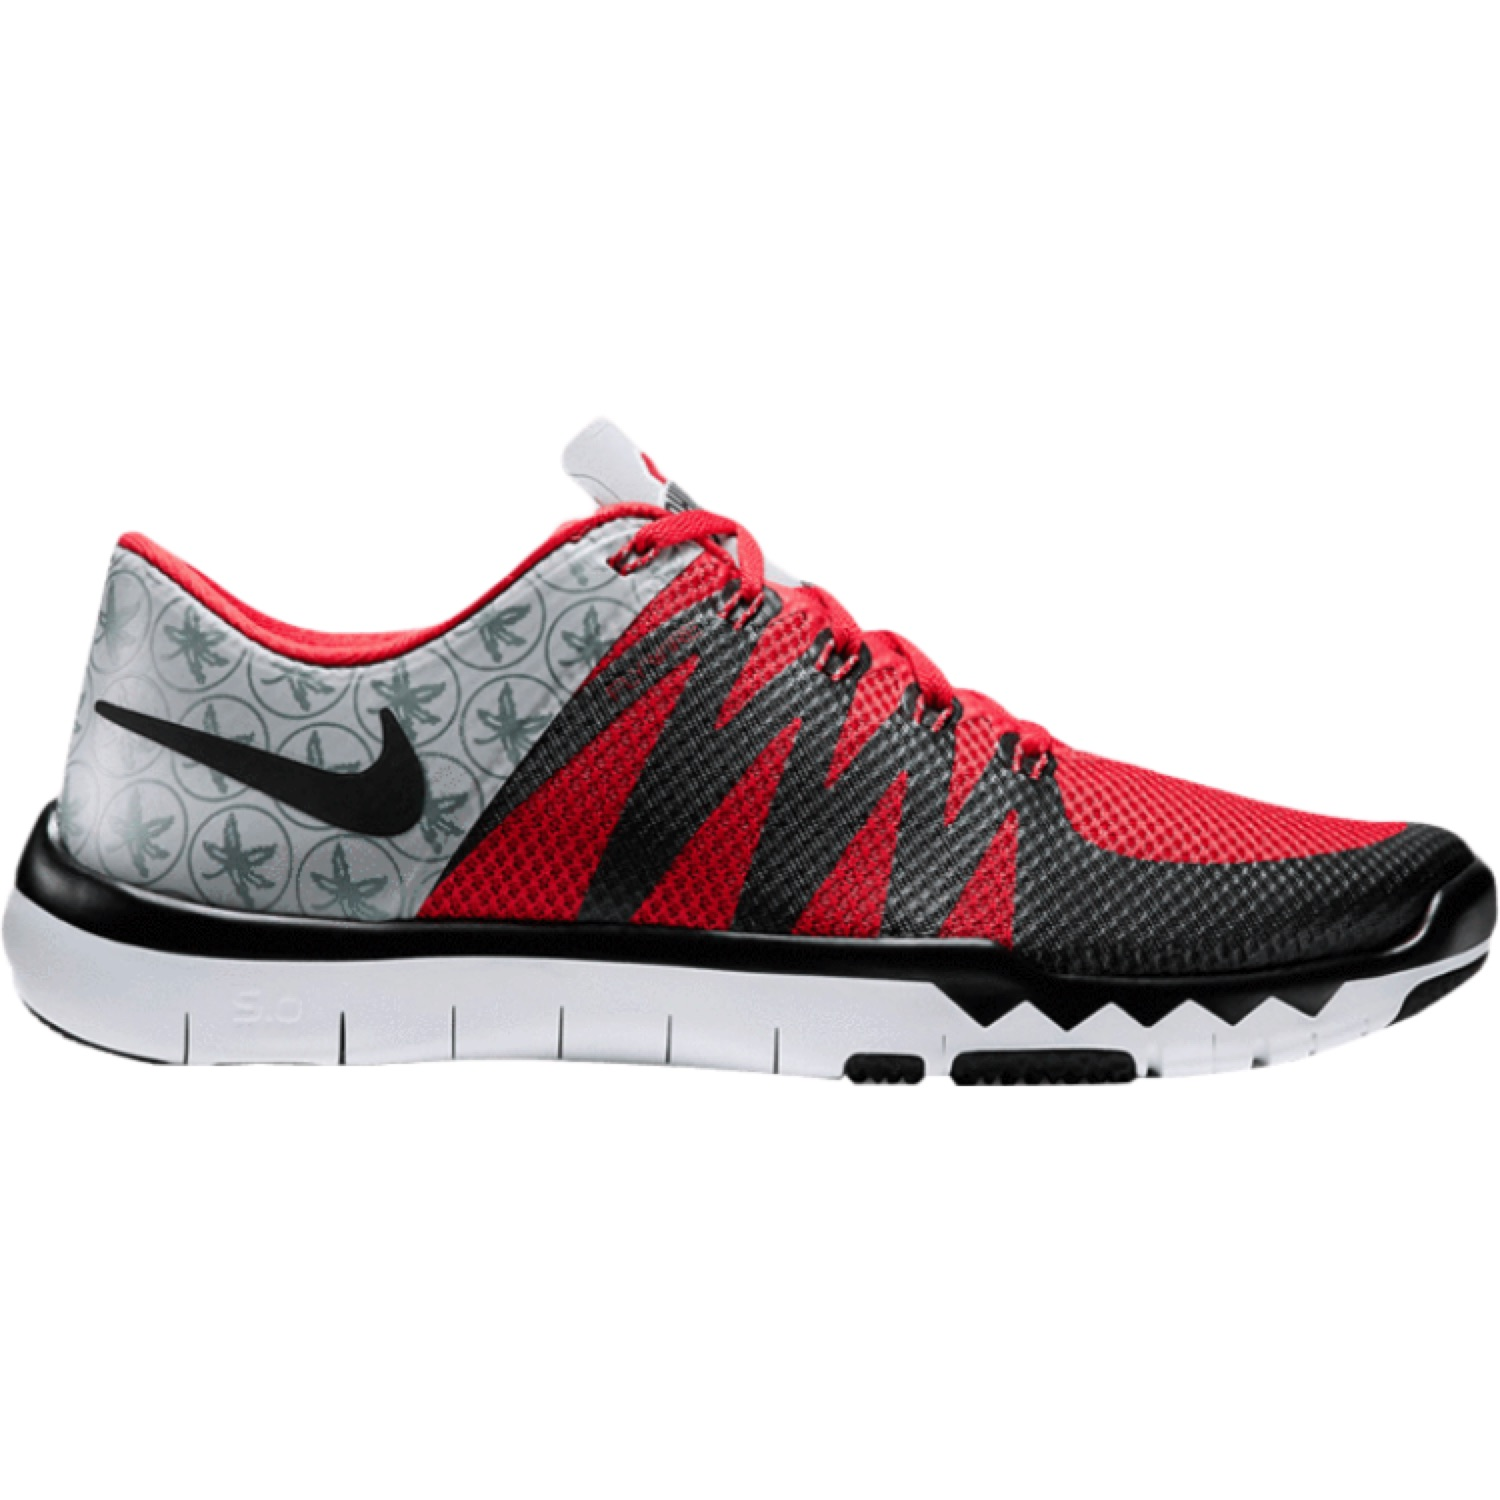 super popular b5106 74e11 Nike Free Trainer 5.0 V6 Amp Ohio State